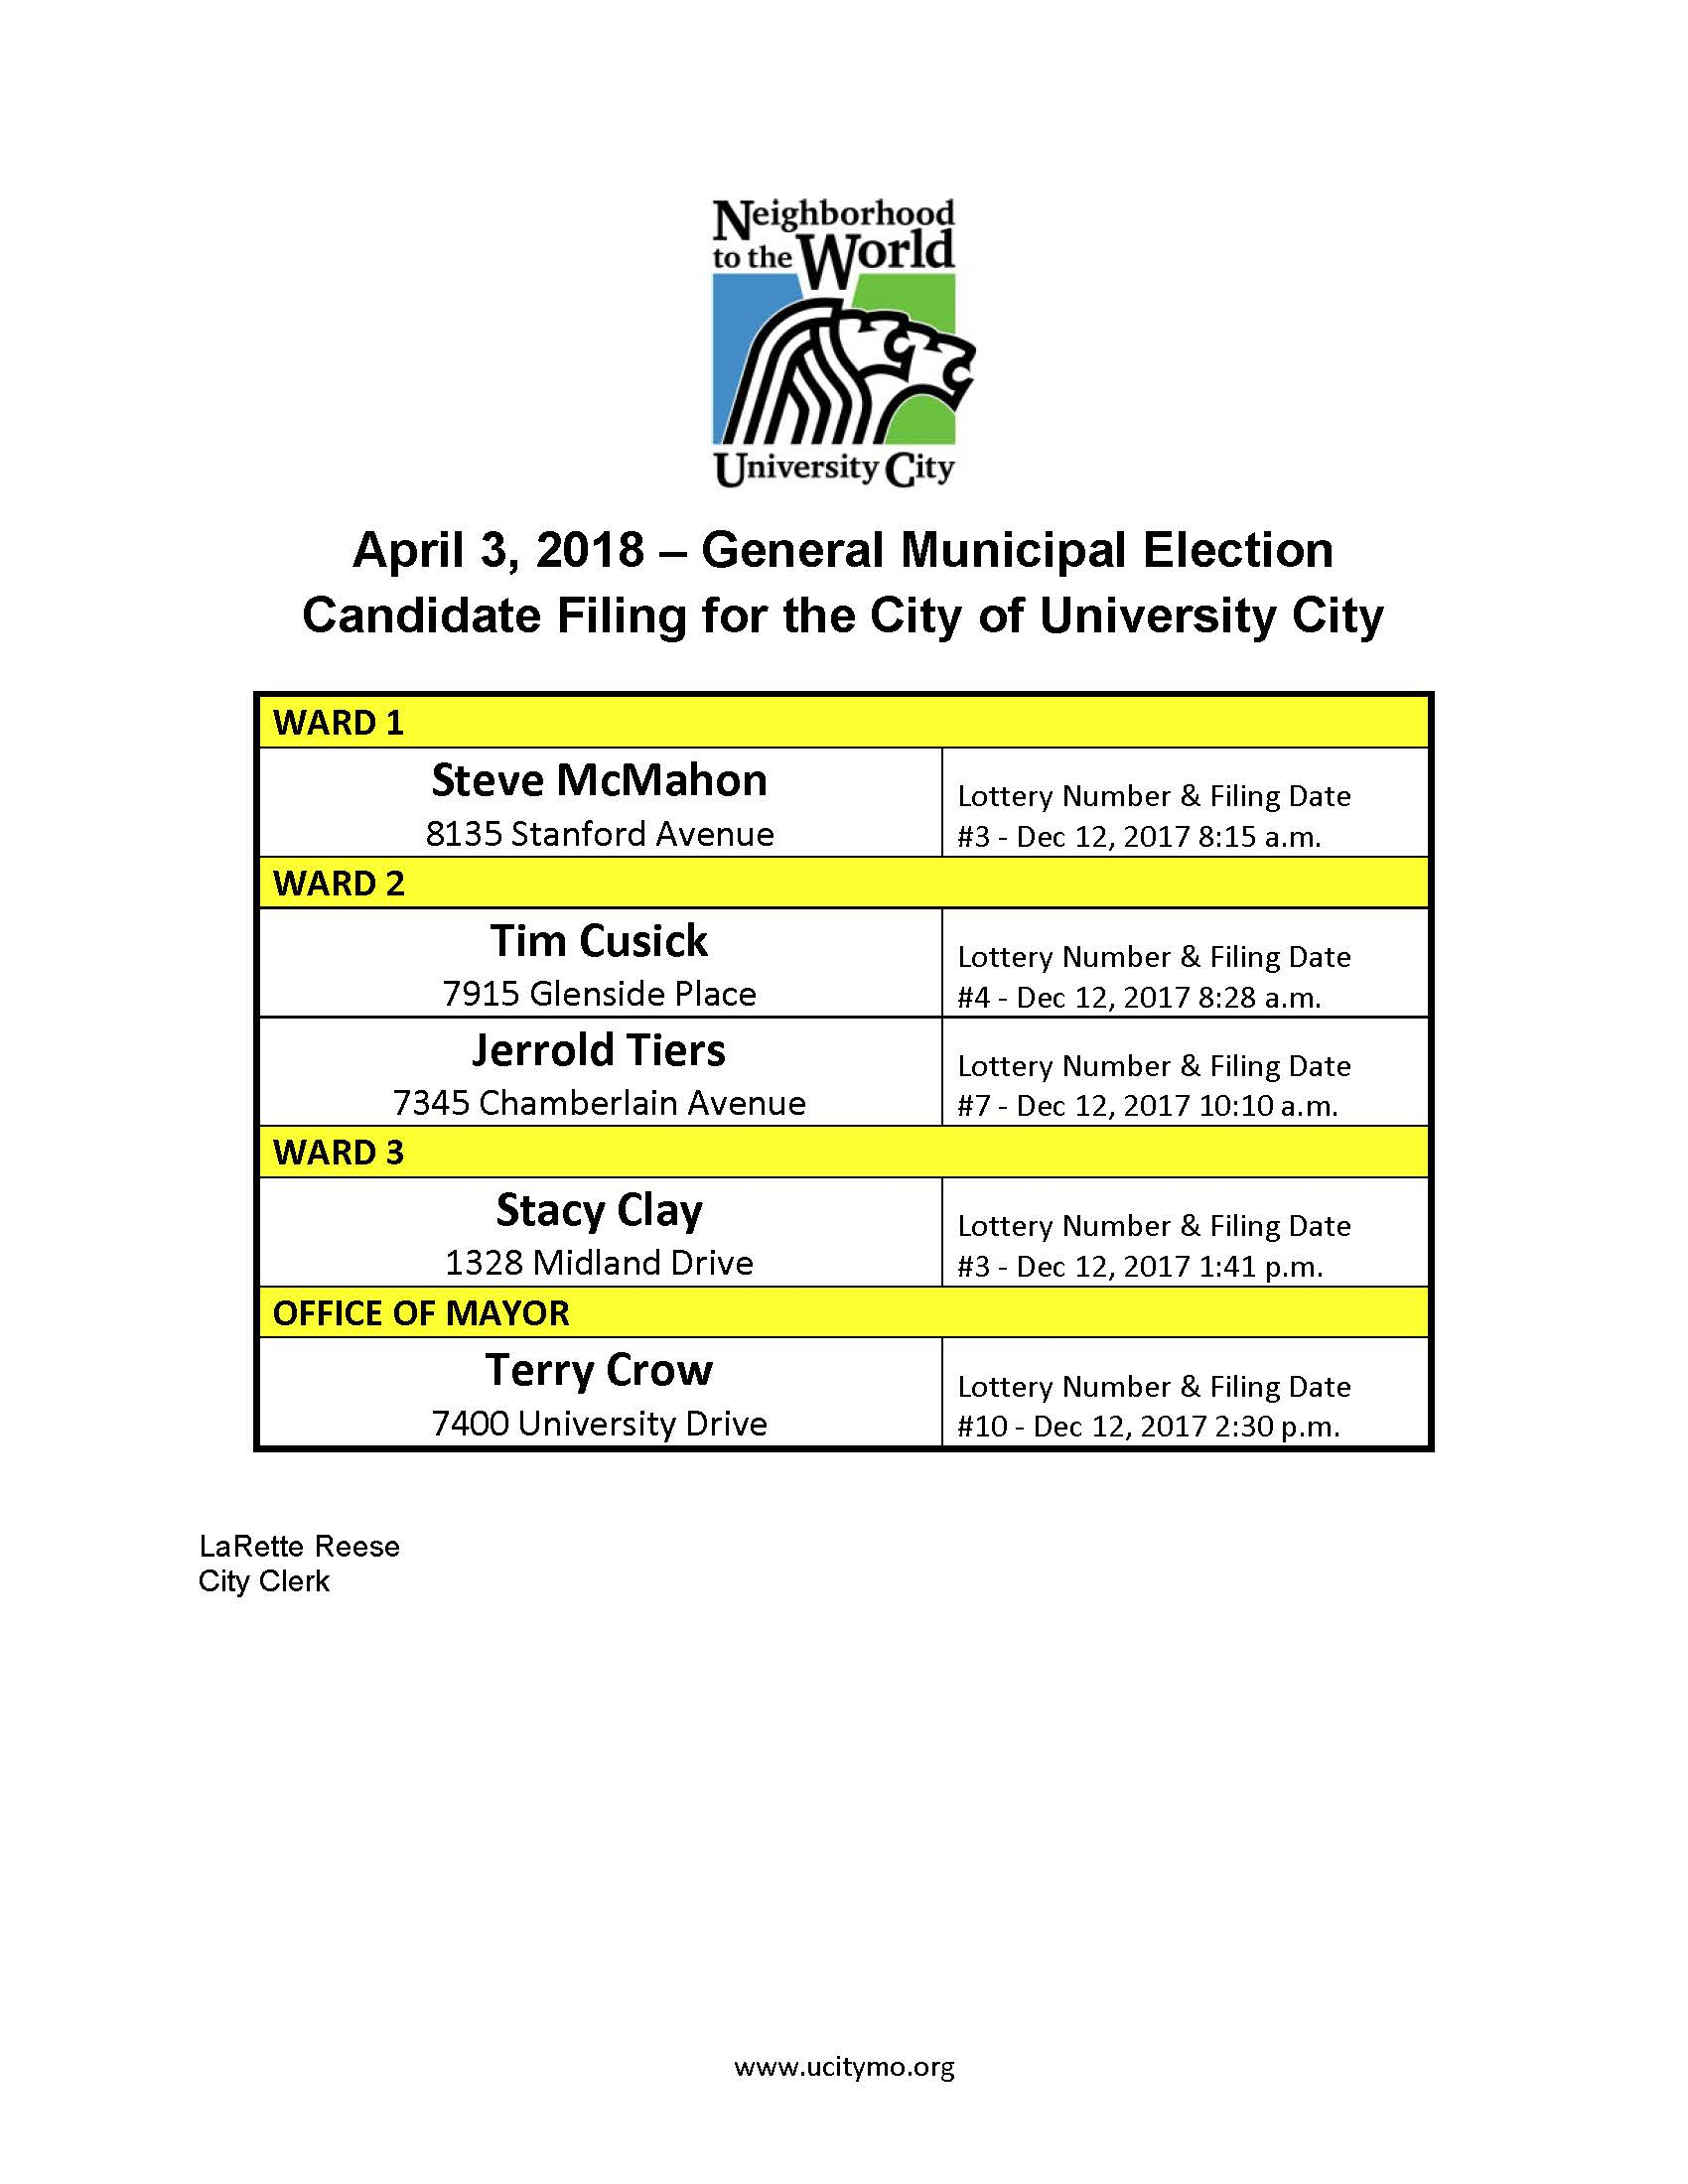 Candidates for City Council -  April 3 2018 General Municipal Election updated